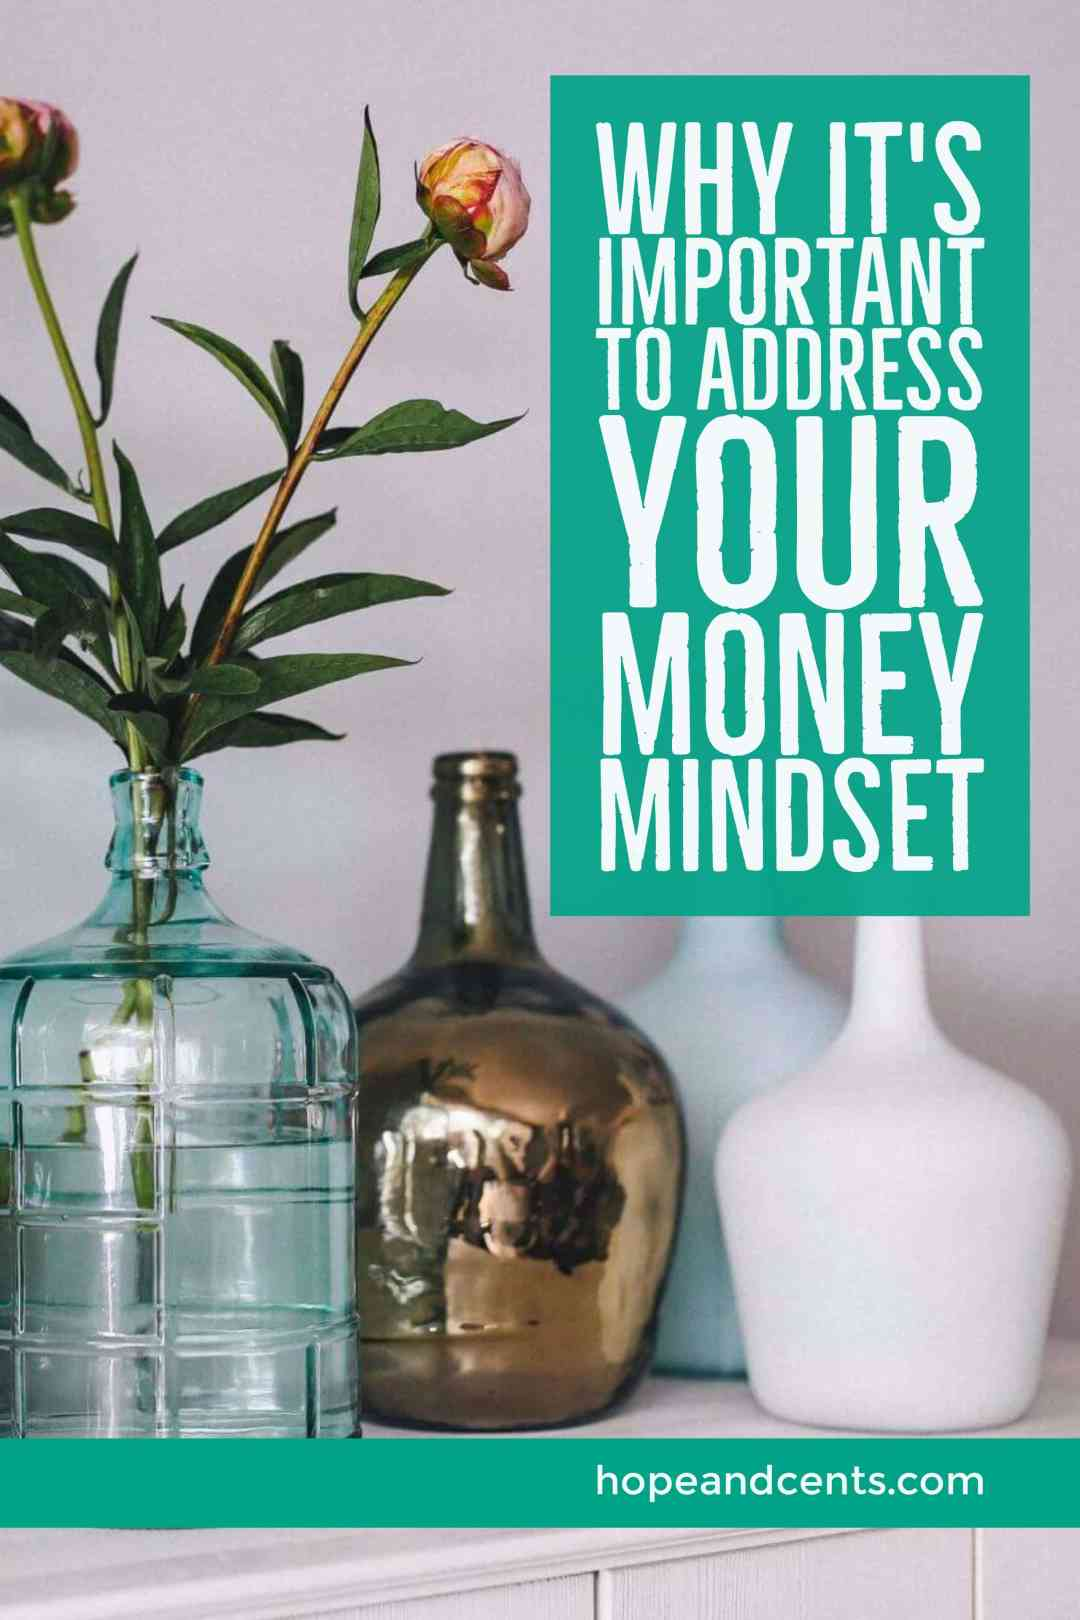 It\'s tempting to focus on the practical steps to pay off debt, save money, or meet other financial goals, but have you taken the time to address your money mindset? Love how this explains what shapes our attitudes towards money.